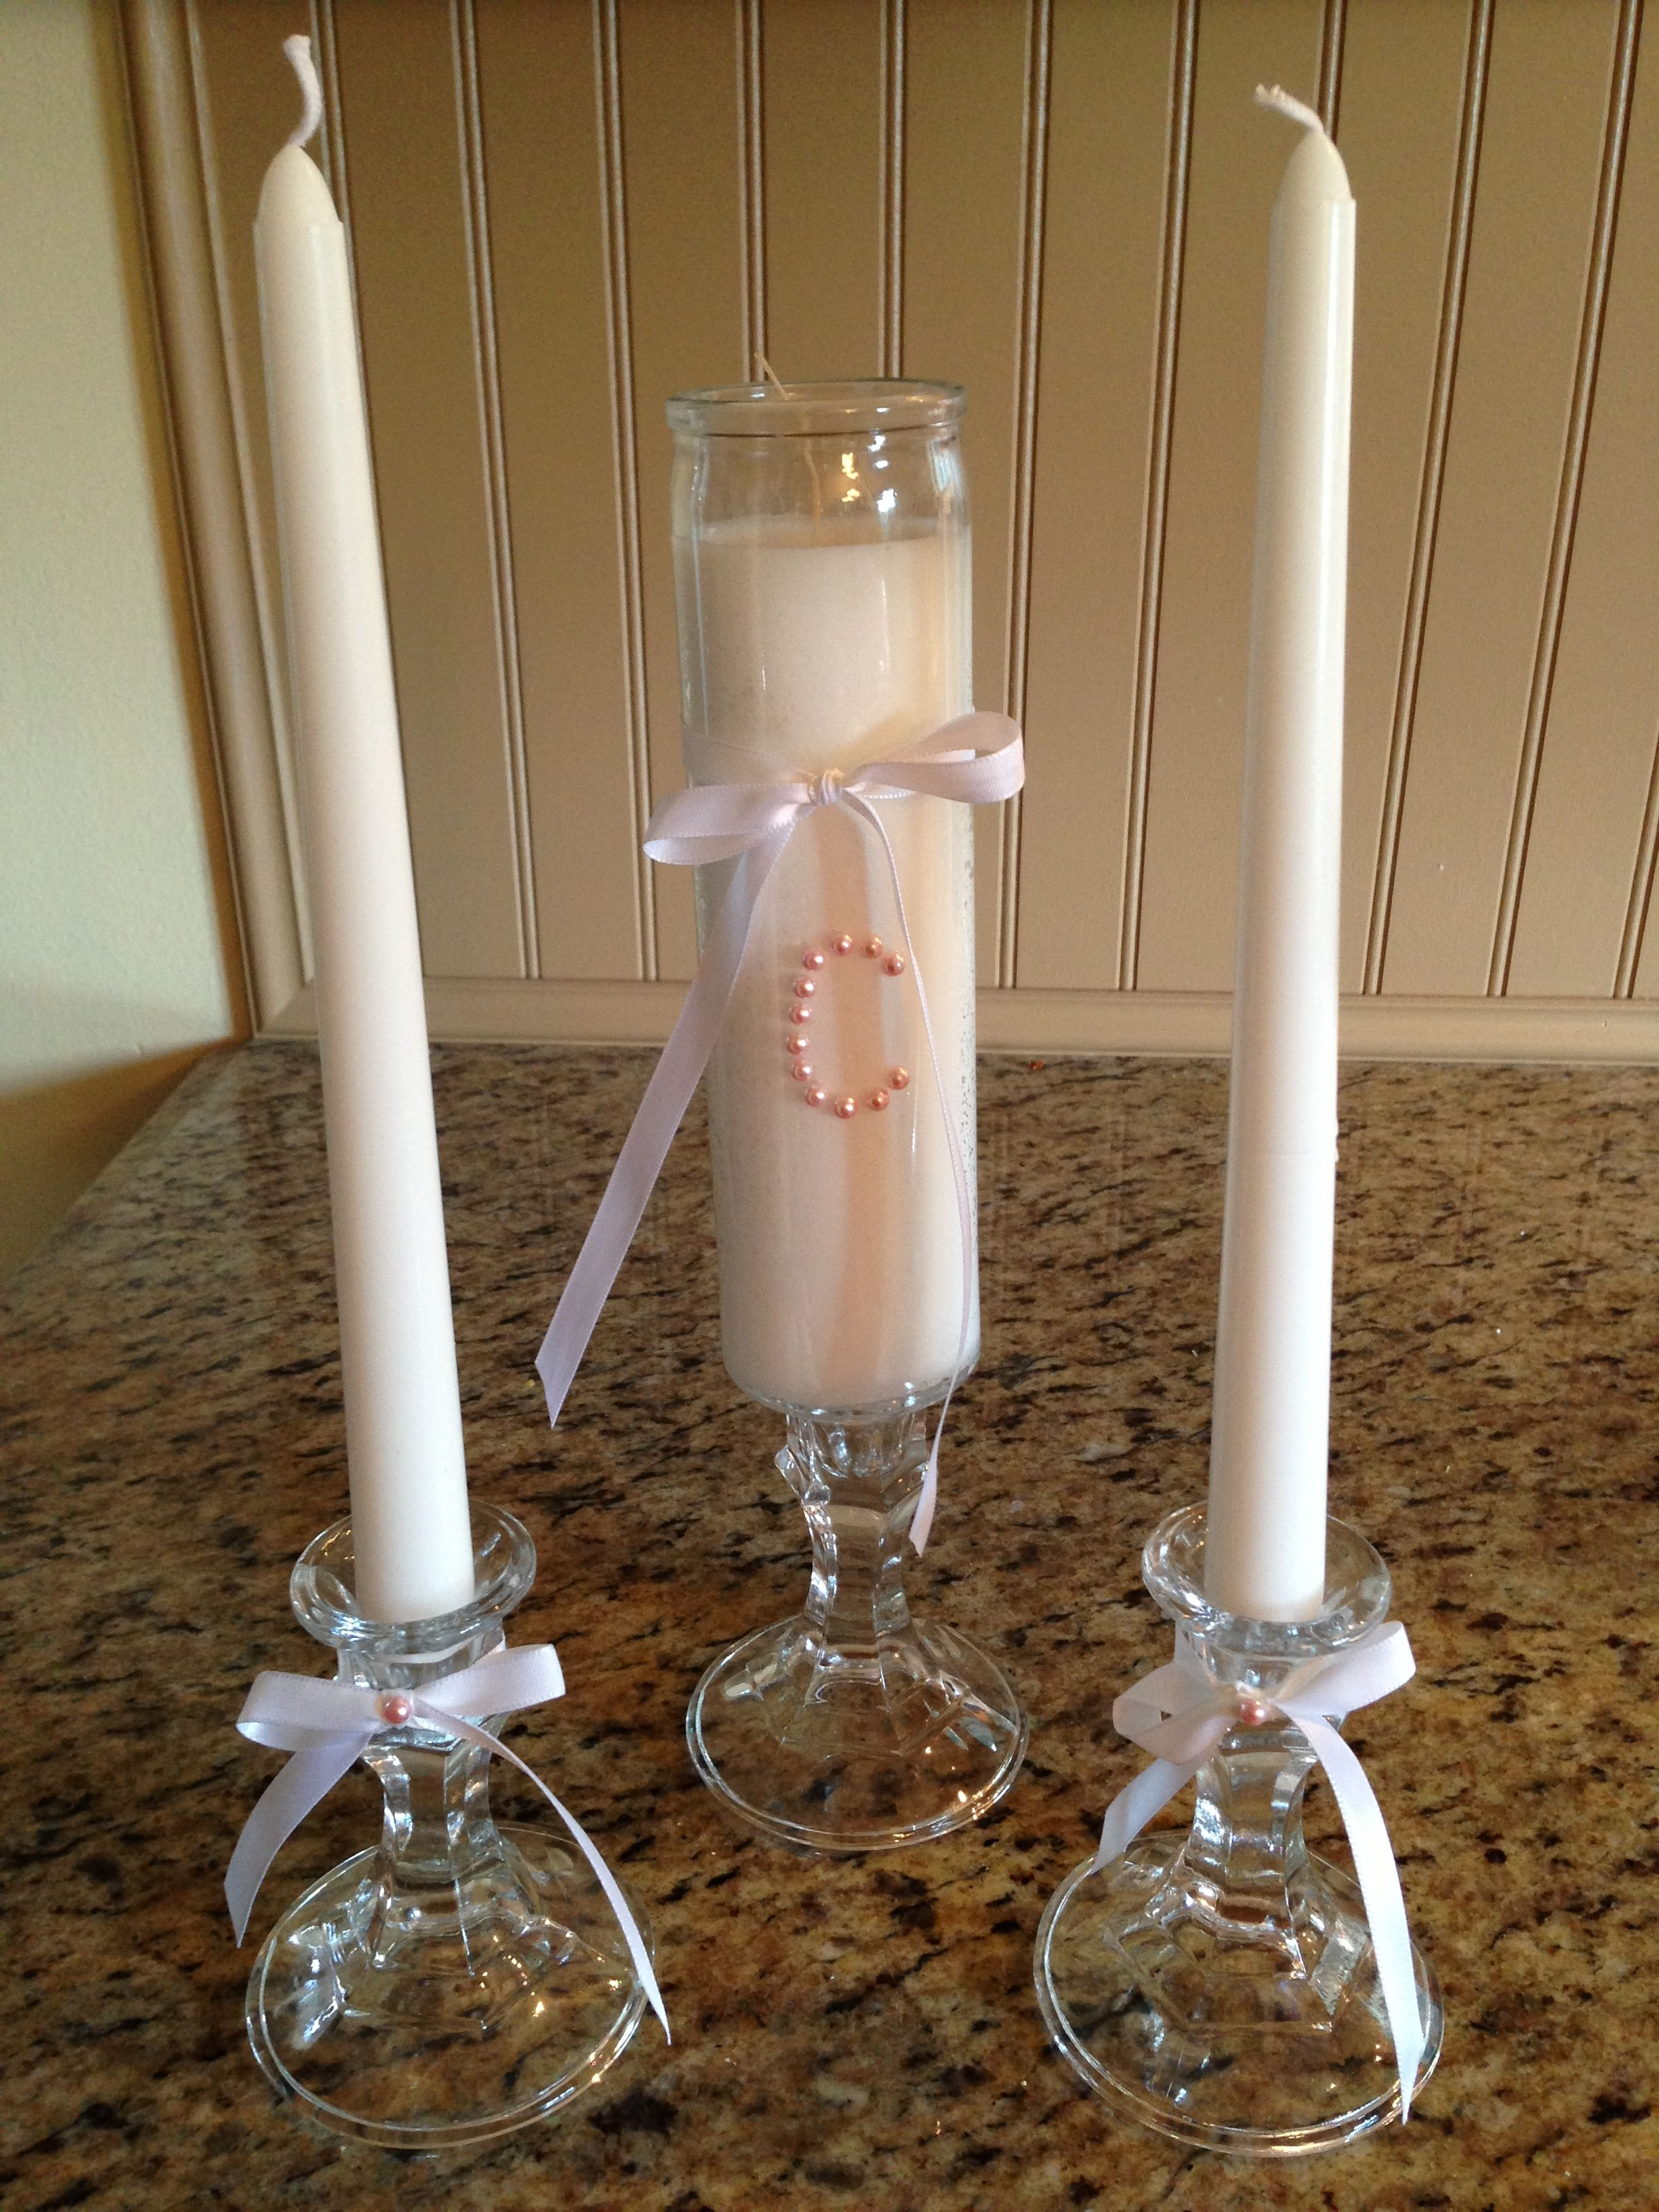 Diy Unity Candle 600 Candles And Holders From Dollar Tree Hot